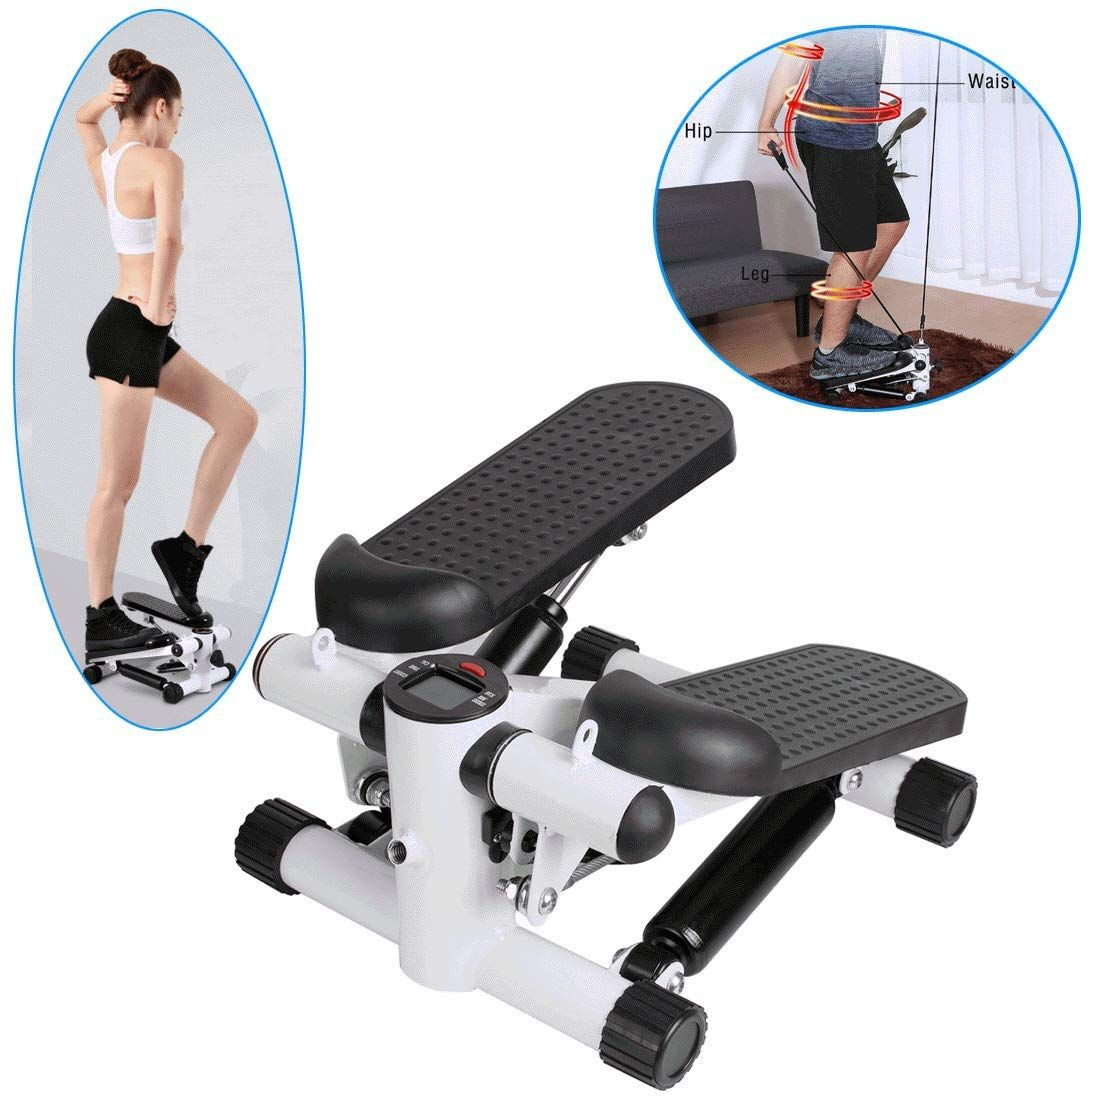 Mini Exercise Stepper Pedal Fitness Cardio Workout Trainer Home Gym Step Machin